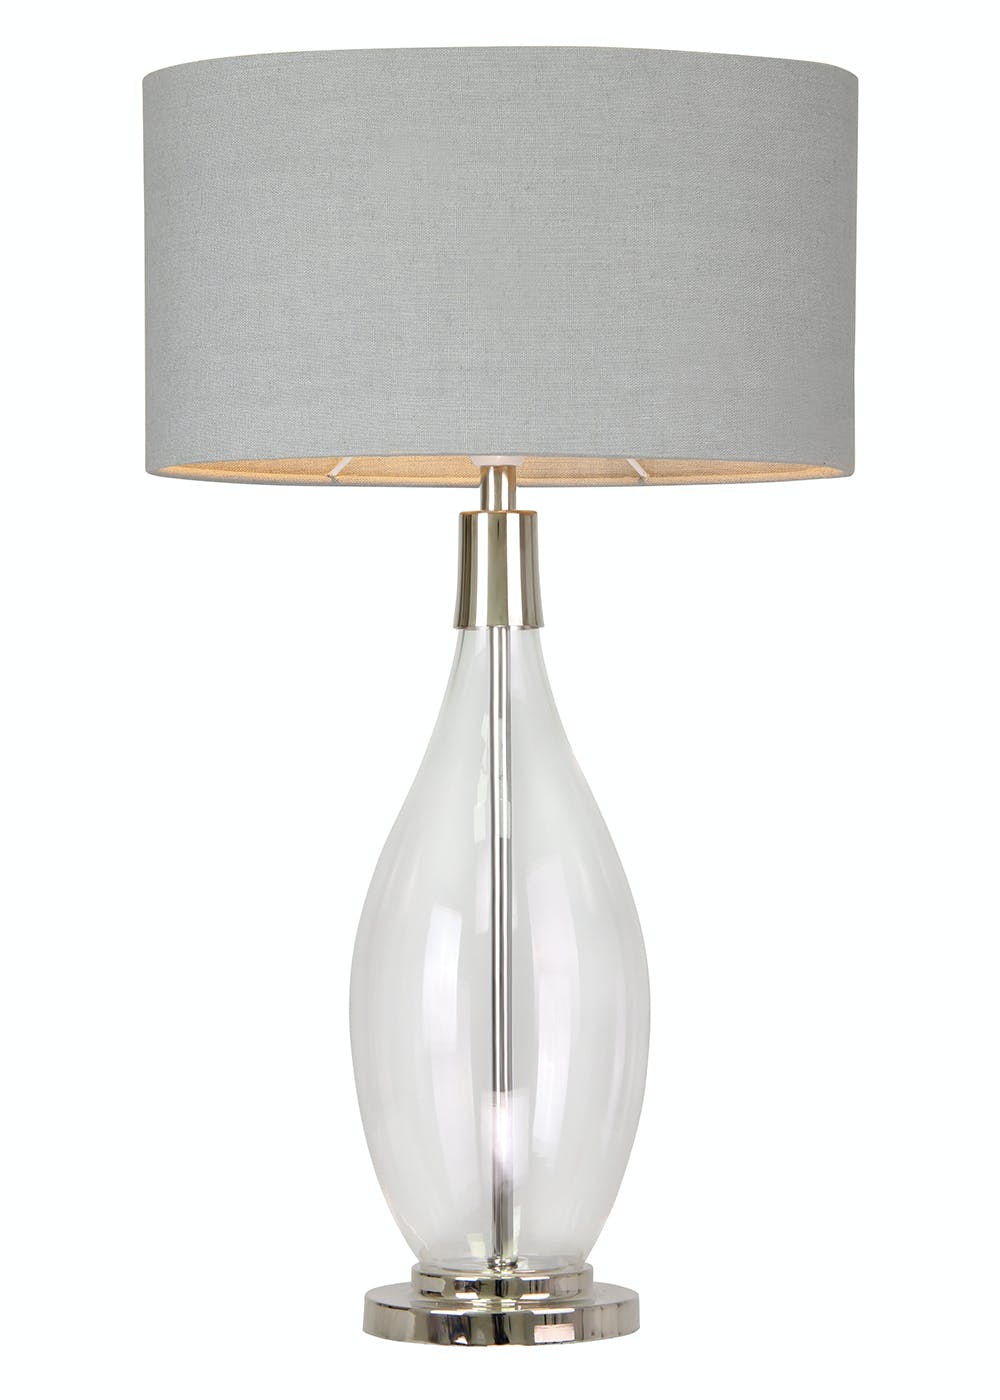 Lighting - Great Quality Lighting Products for Every Room – Matalan